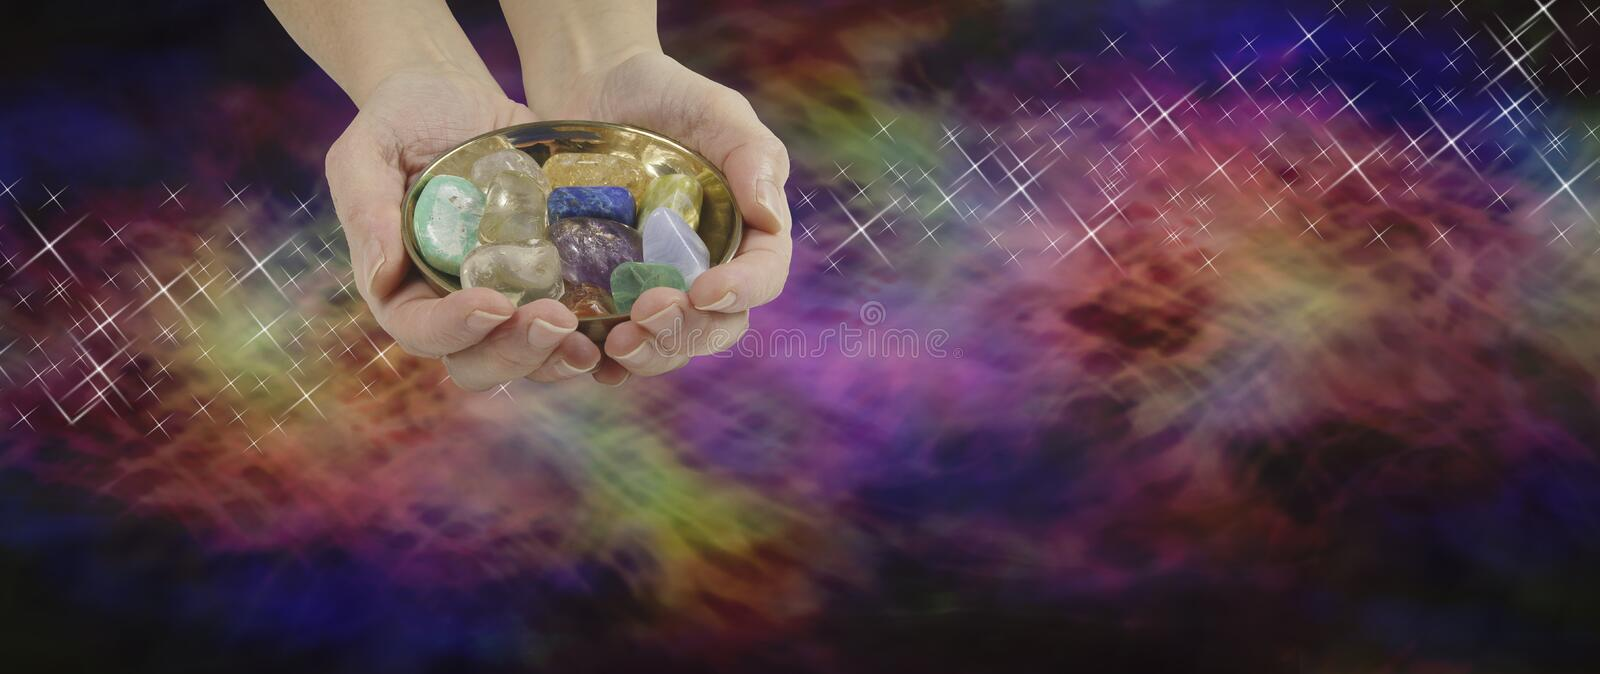 Crystal Therapy Website Banner royalty free illustration